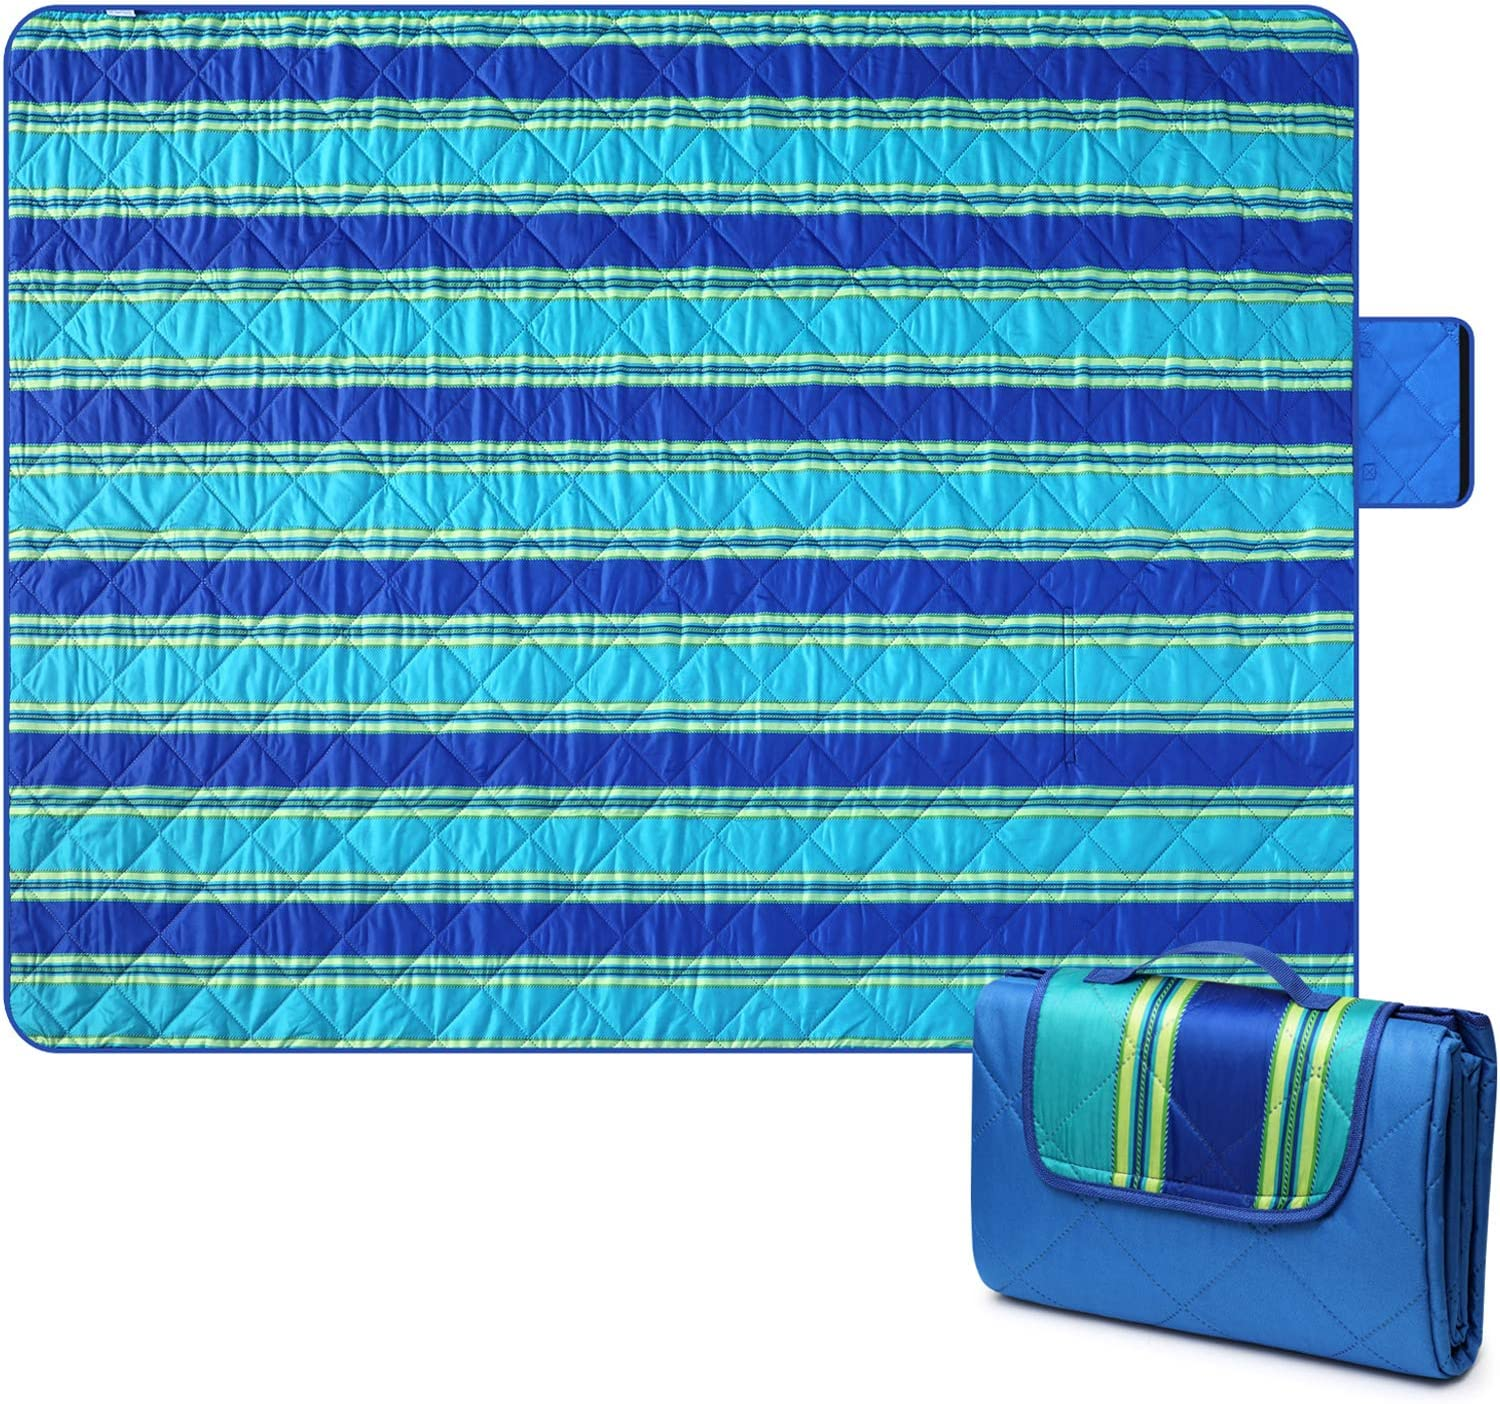 T-Buy Beach Blanket,Oversized Lightweight Beach Mat,Waterproof Picnic Blanket Made by Premium Nylon for or Travel,Camping,Hiking 78 * 72 inch